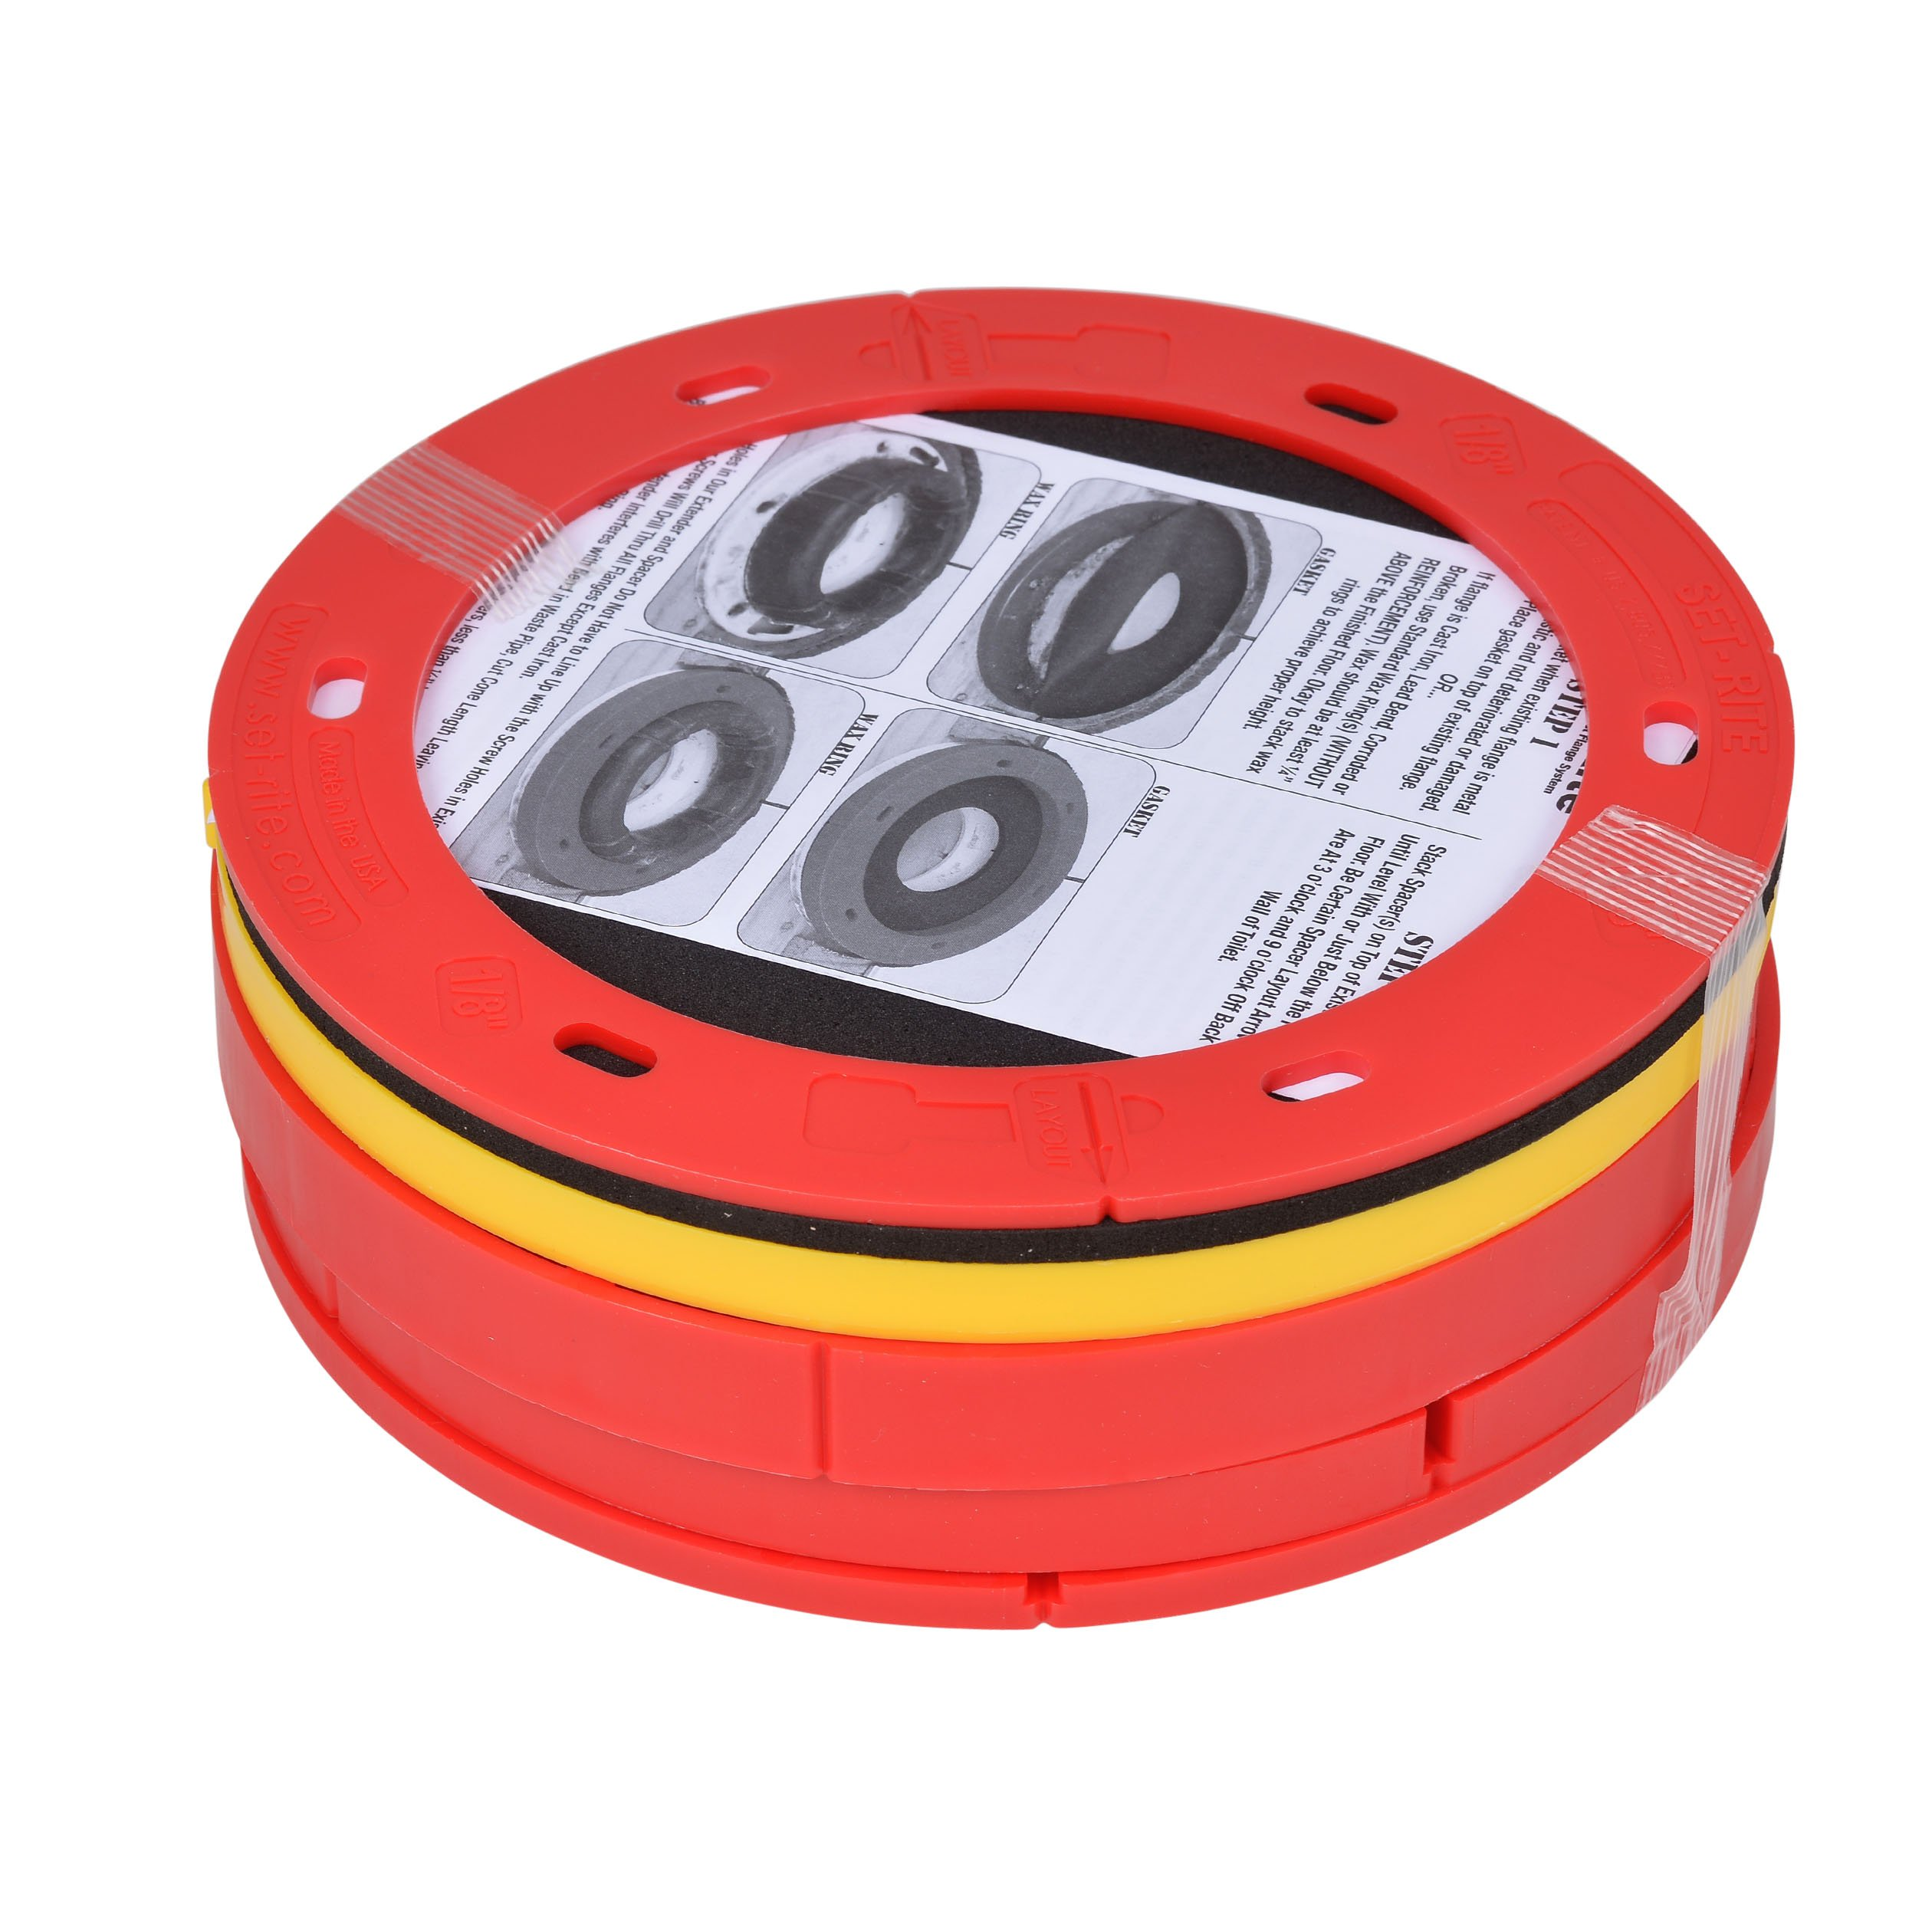 OATEY 43400 Set-Rite Toilet Flange Extension Kit, 1/4'' - 1-5/8'', Red, Yellow, used on PVC, ABS, Cast Iron and Stainless Steel by Set-Rite Products (Image #2)